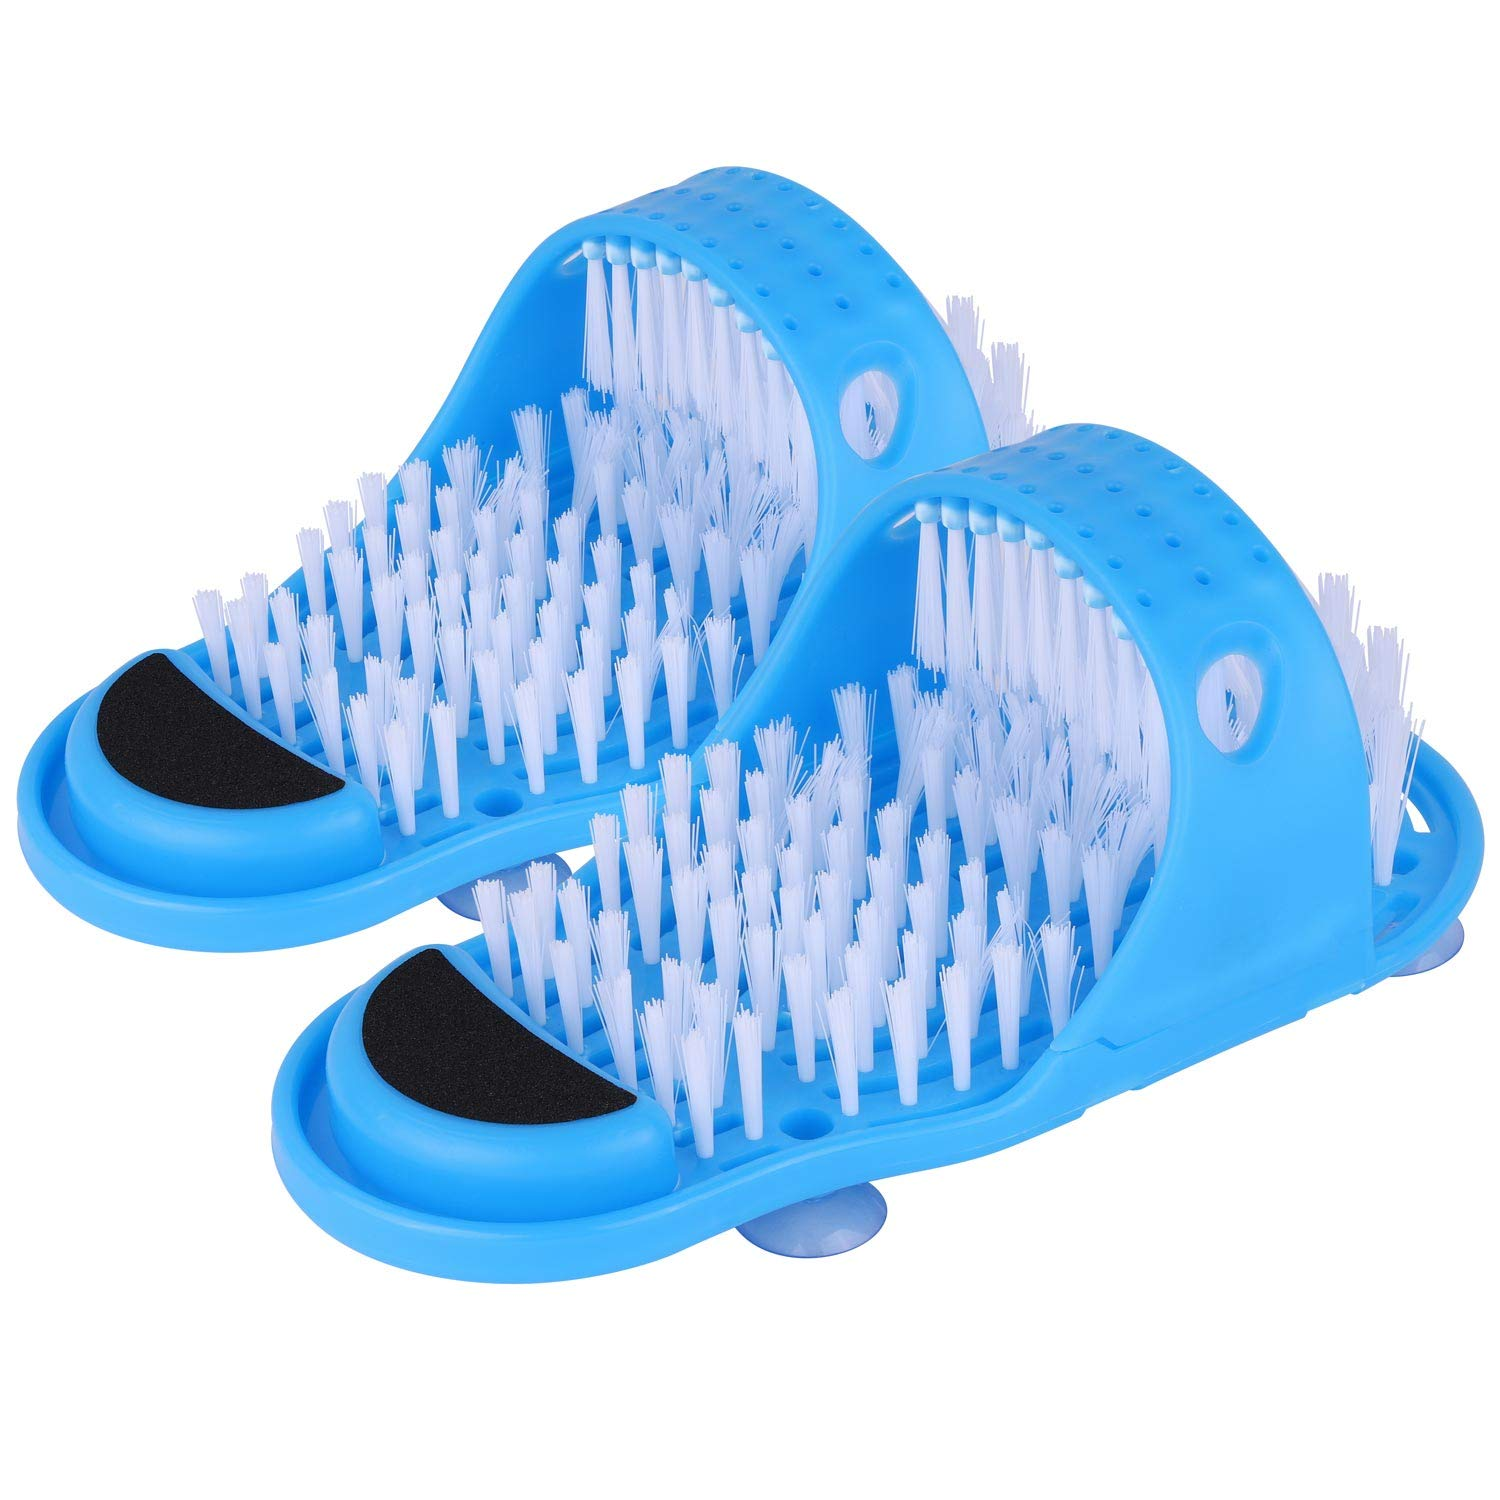 Magic Foot Scrubber Feet Cleaner Washer Brush for Shower Floor Spas Massage, Slipper for Exfoliating Cleaning Foot 1 Pair